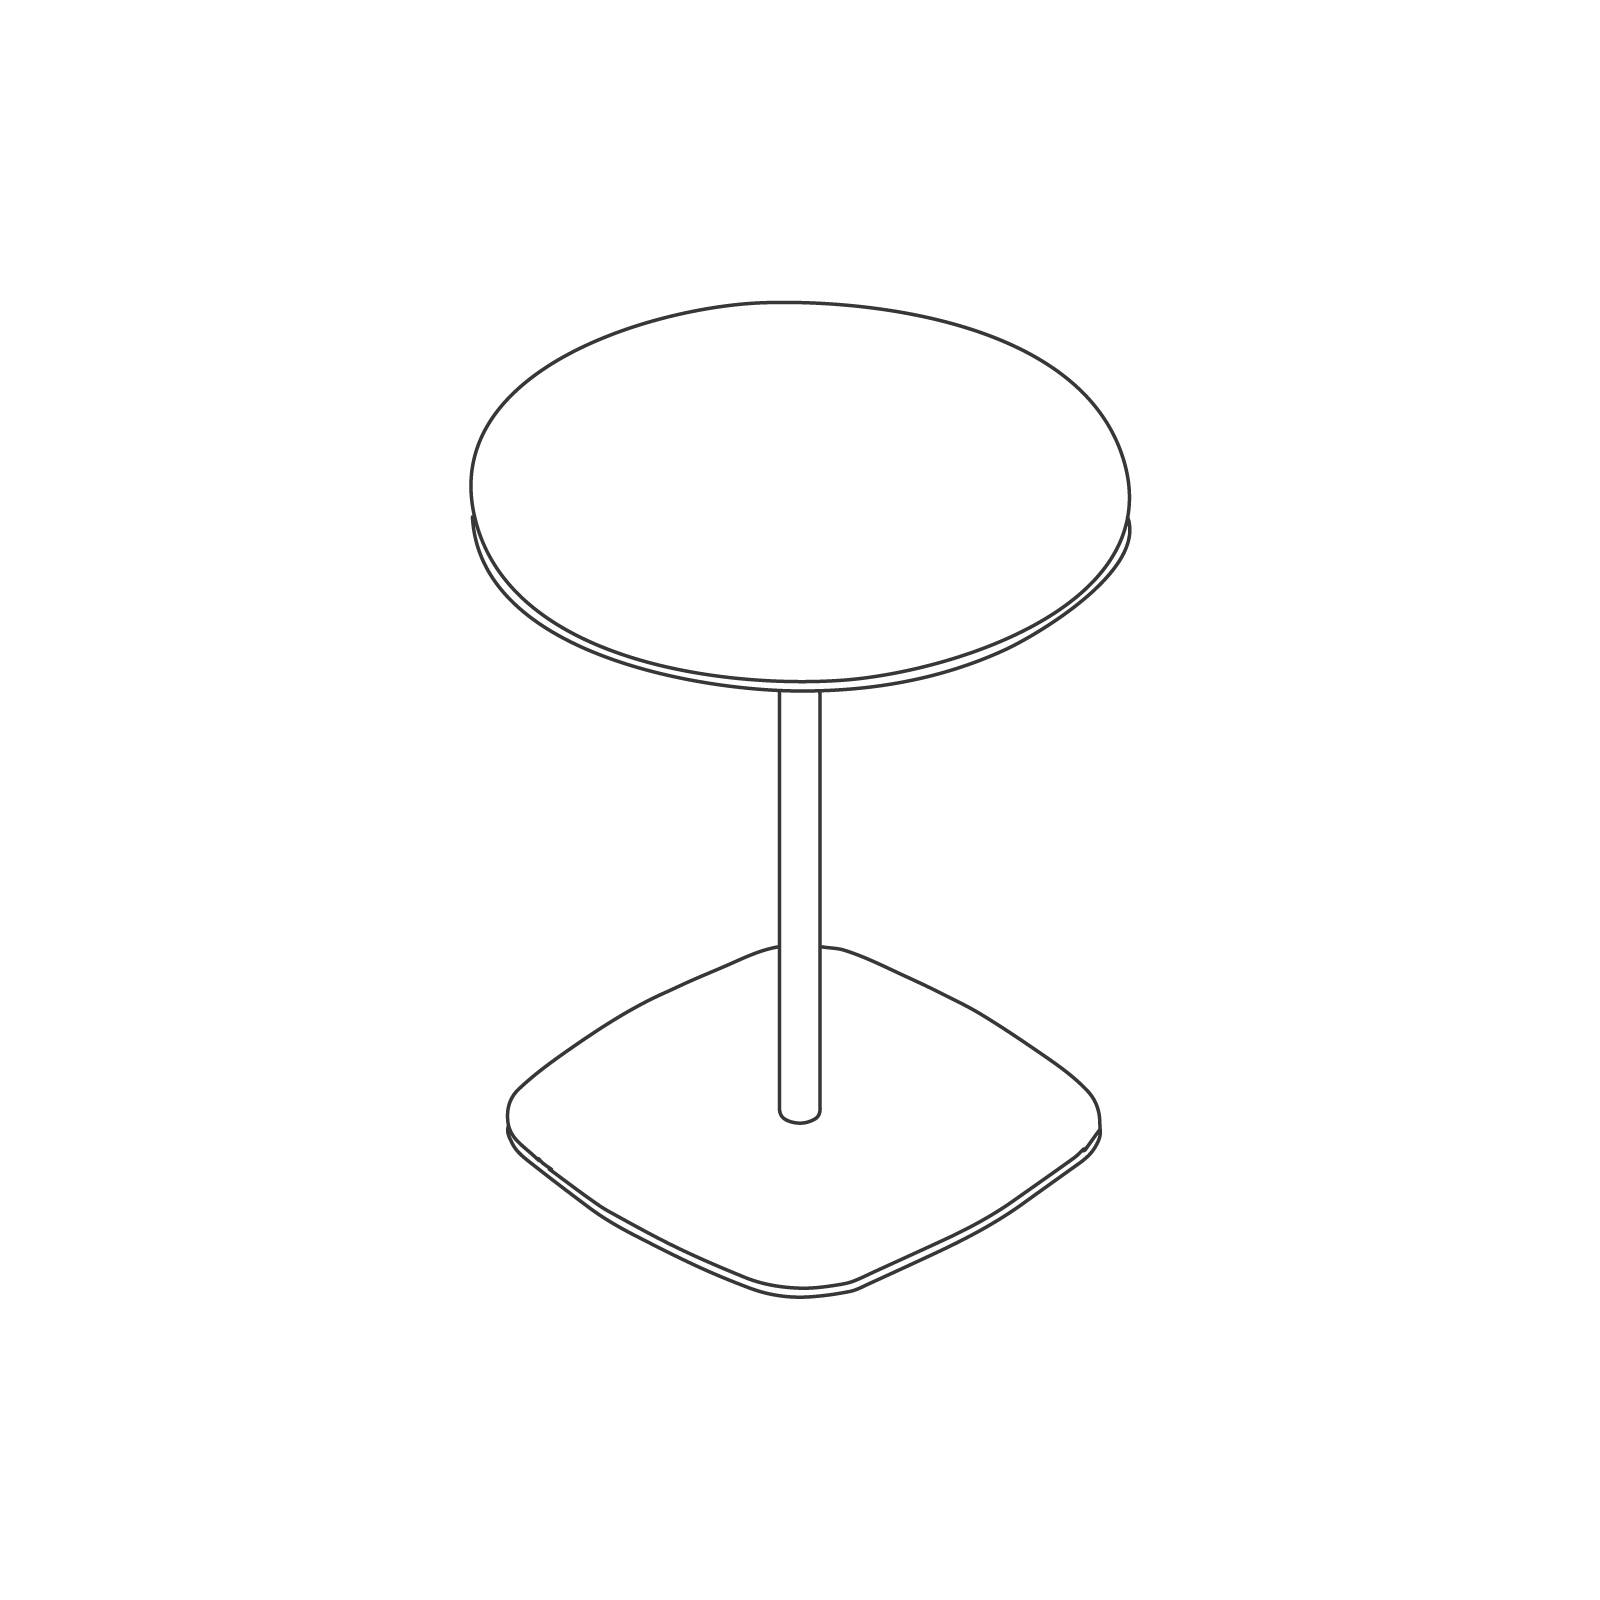 A line drawing of Ped Café Table–Round.